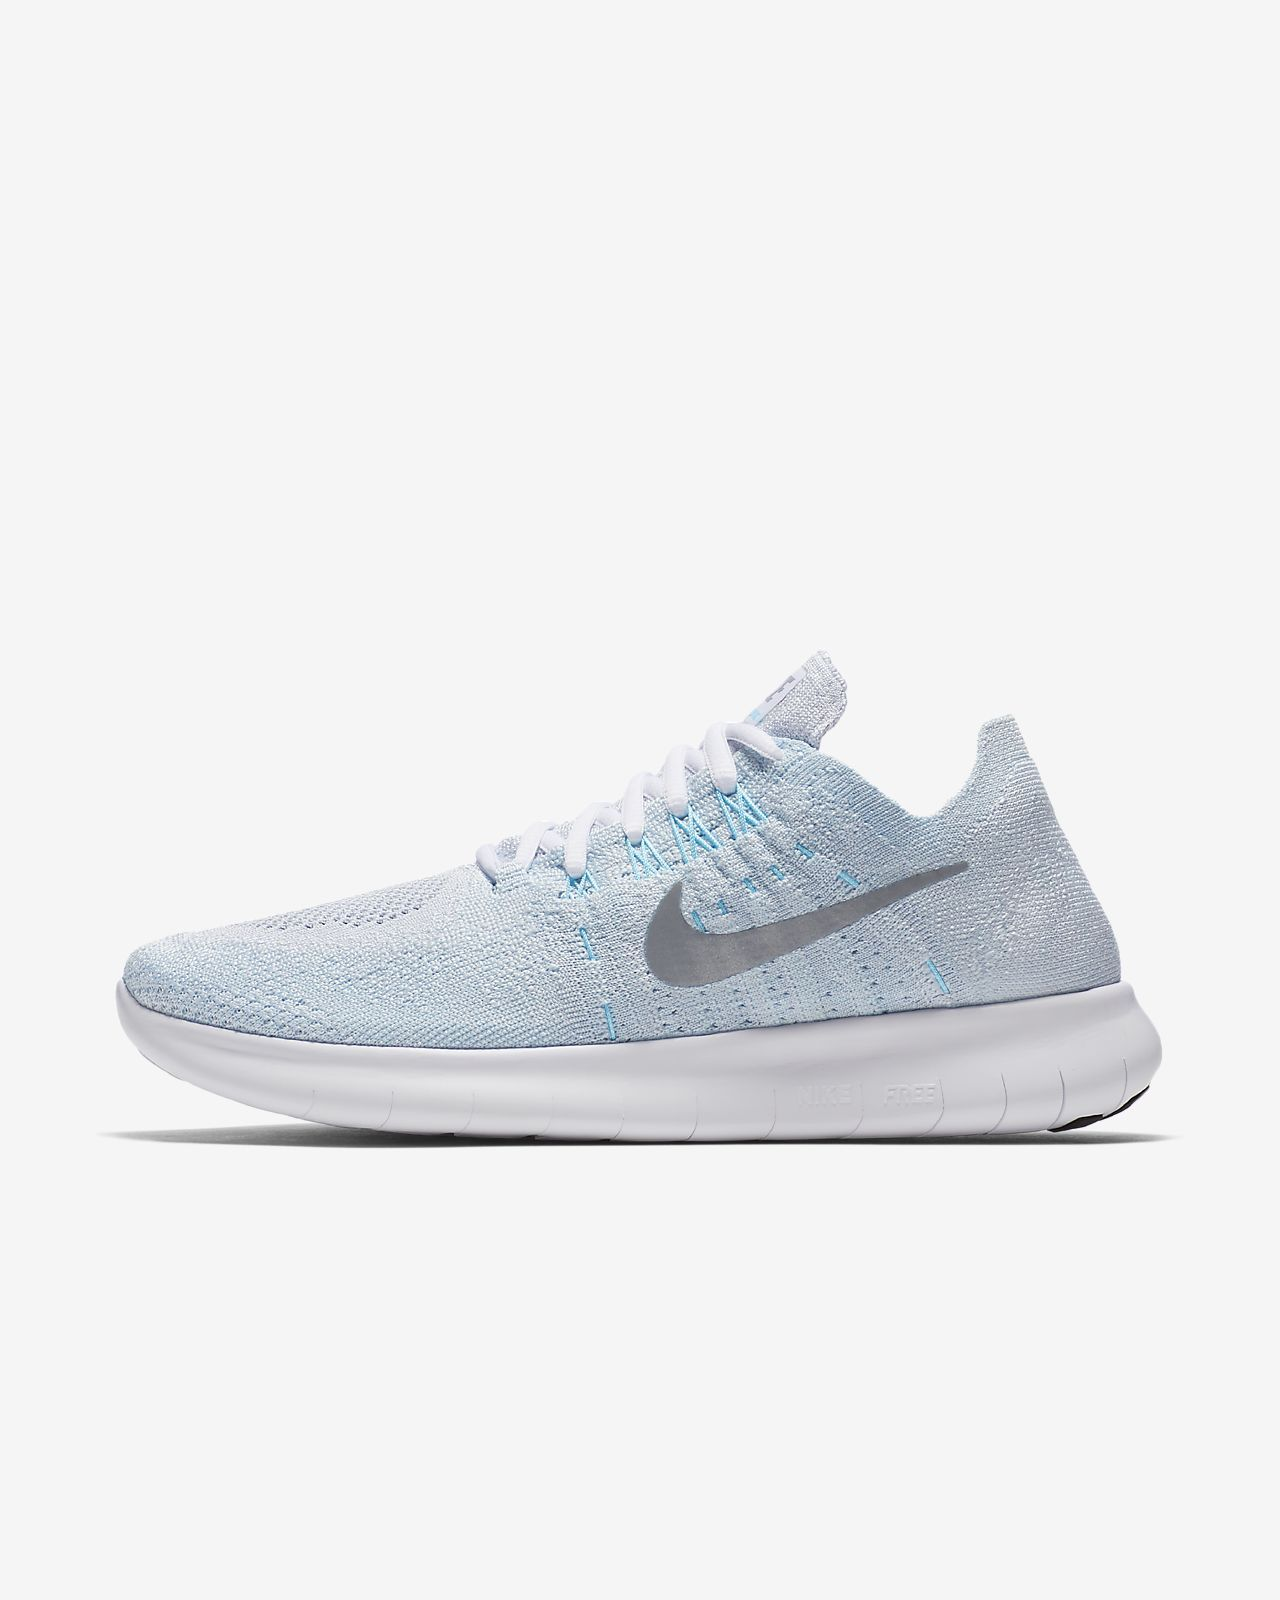 8d5bee8ce2ab Nike Free RN Flyknit 2017 Women s Running Shoe (size 8.5 - pure platinum glacier  blue blue fury metallic silver)